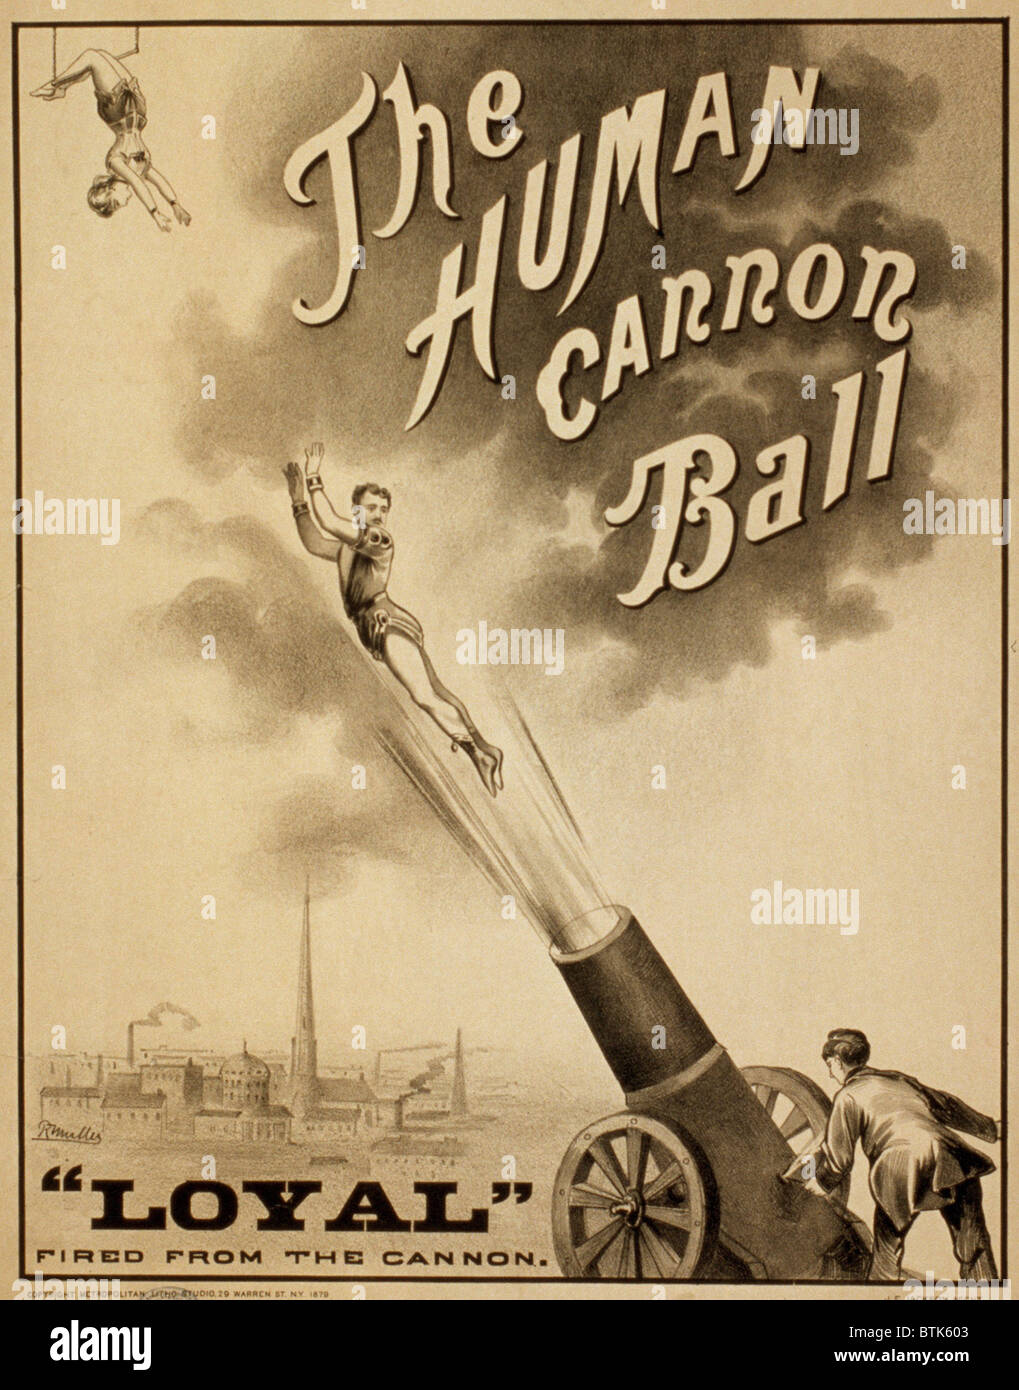 I Am A Human Cannonball: A Brief History Of Circus Bullets ... |Human Cannonball Circus Poster